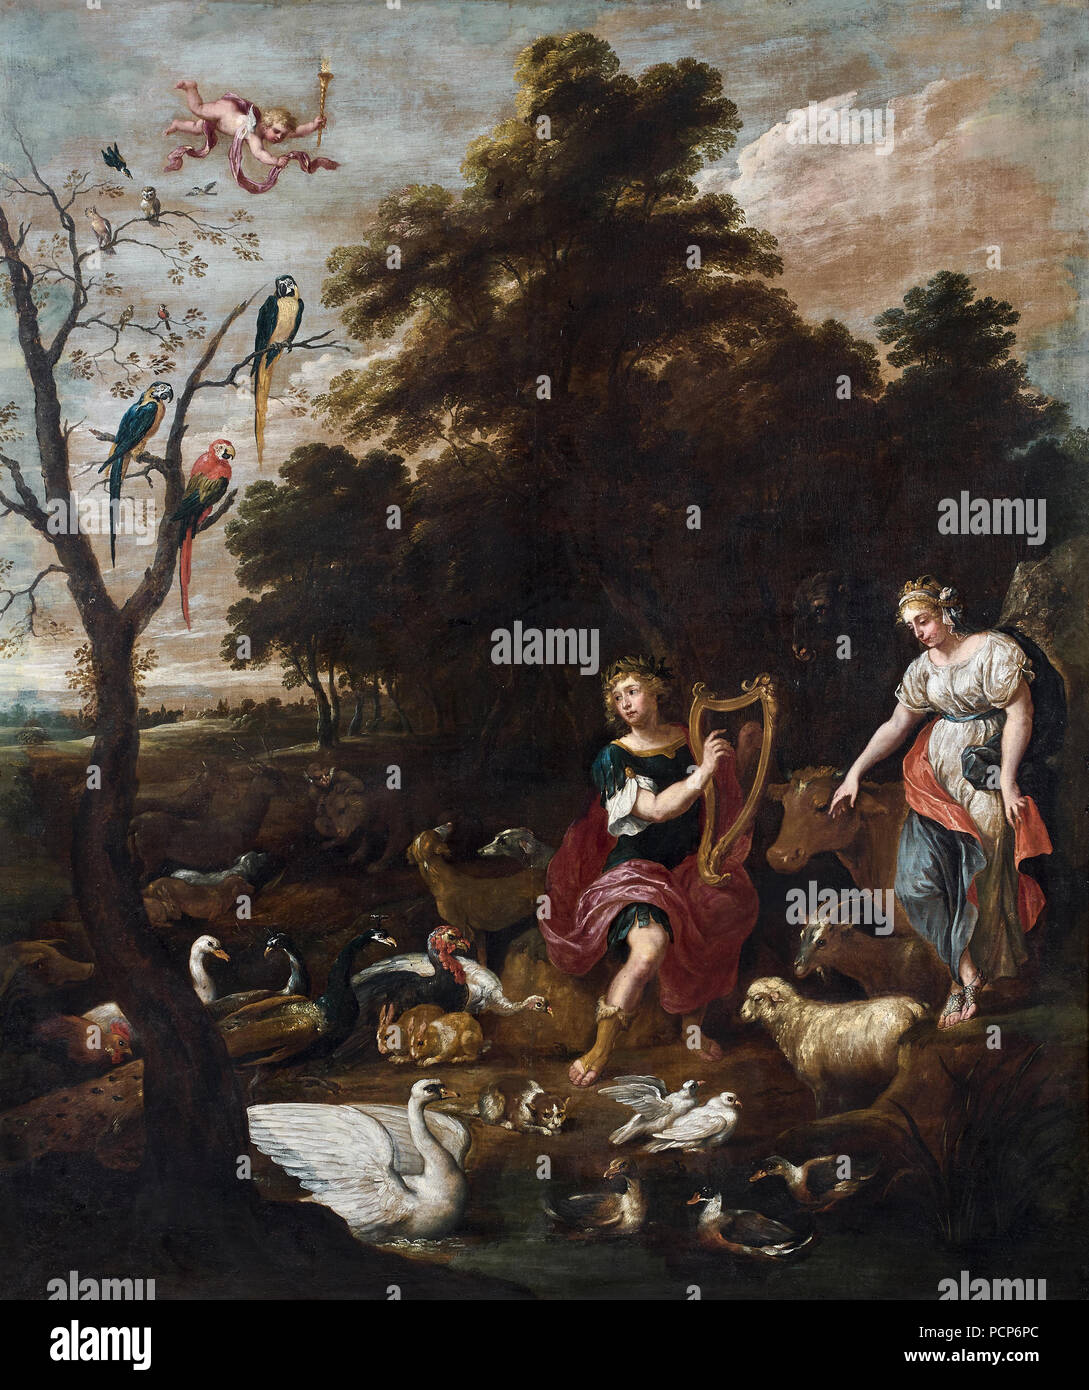 Orpheus among the animals, 1660s. Stock Photo